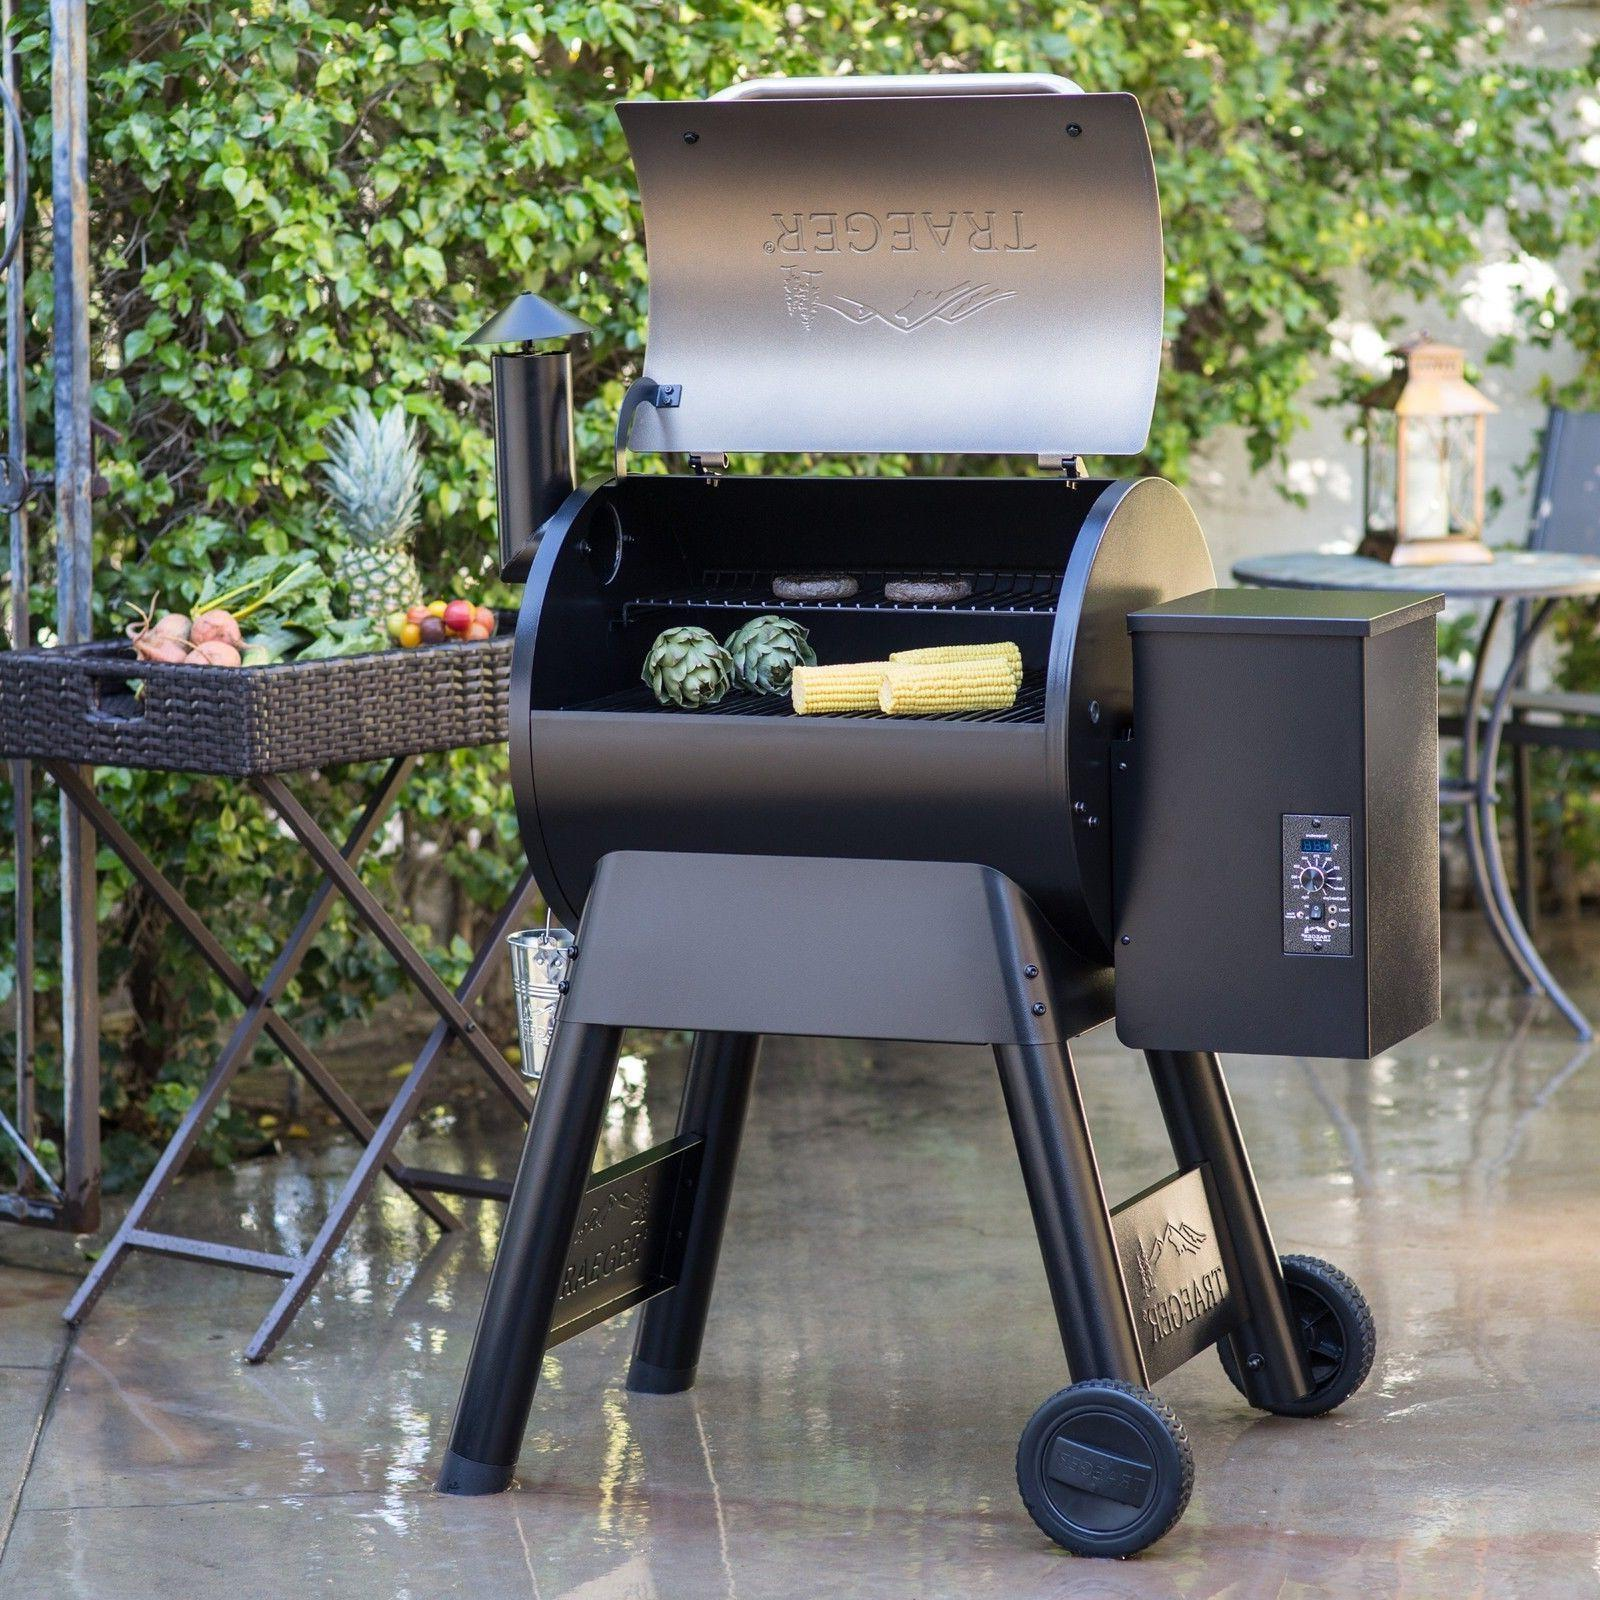 Traeger Grill Cooking Smoker